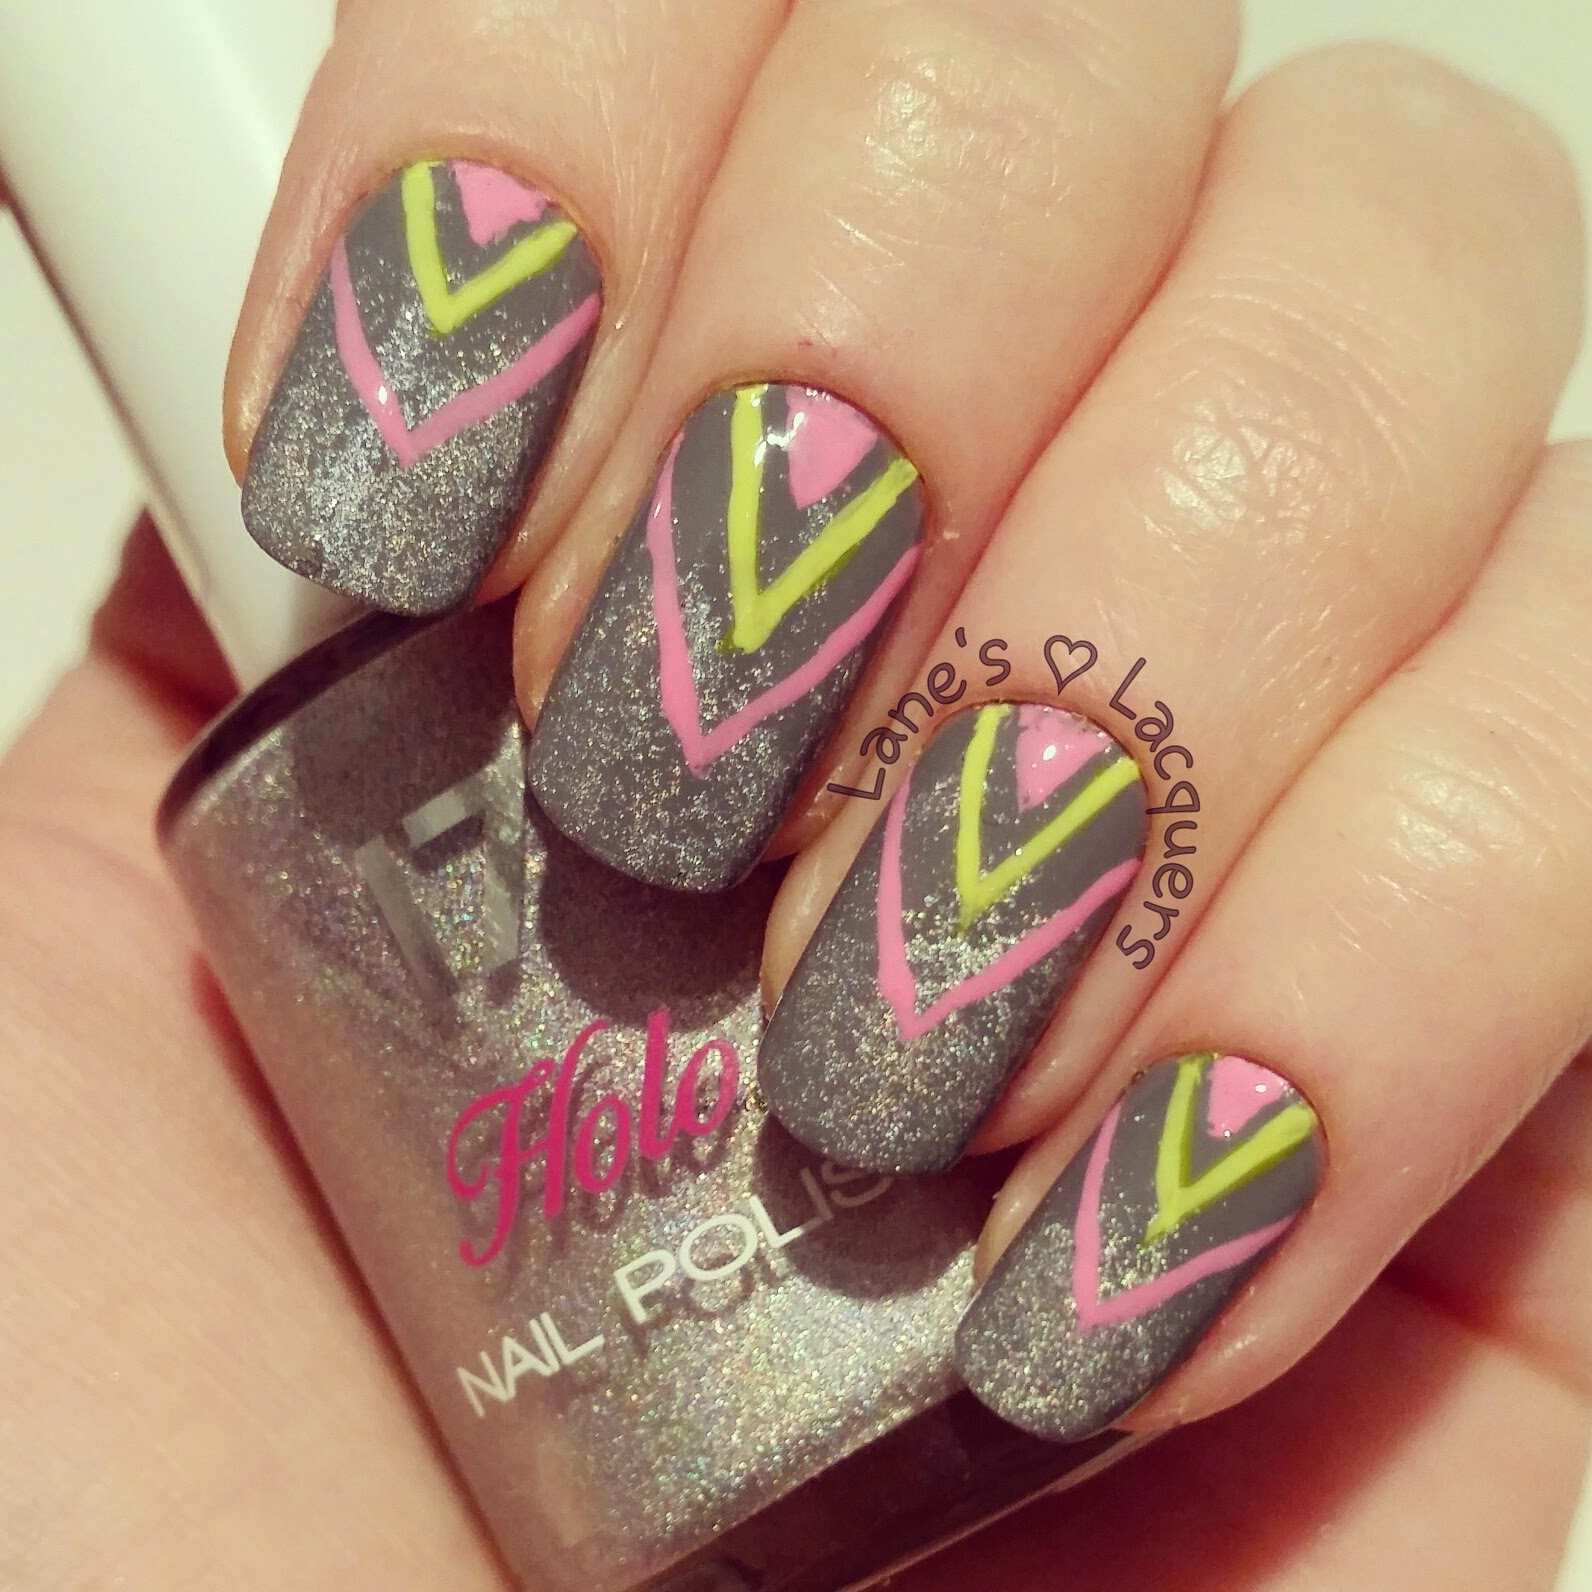 grey-holo-base-neon-chevron-freehand-nail-art (2)